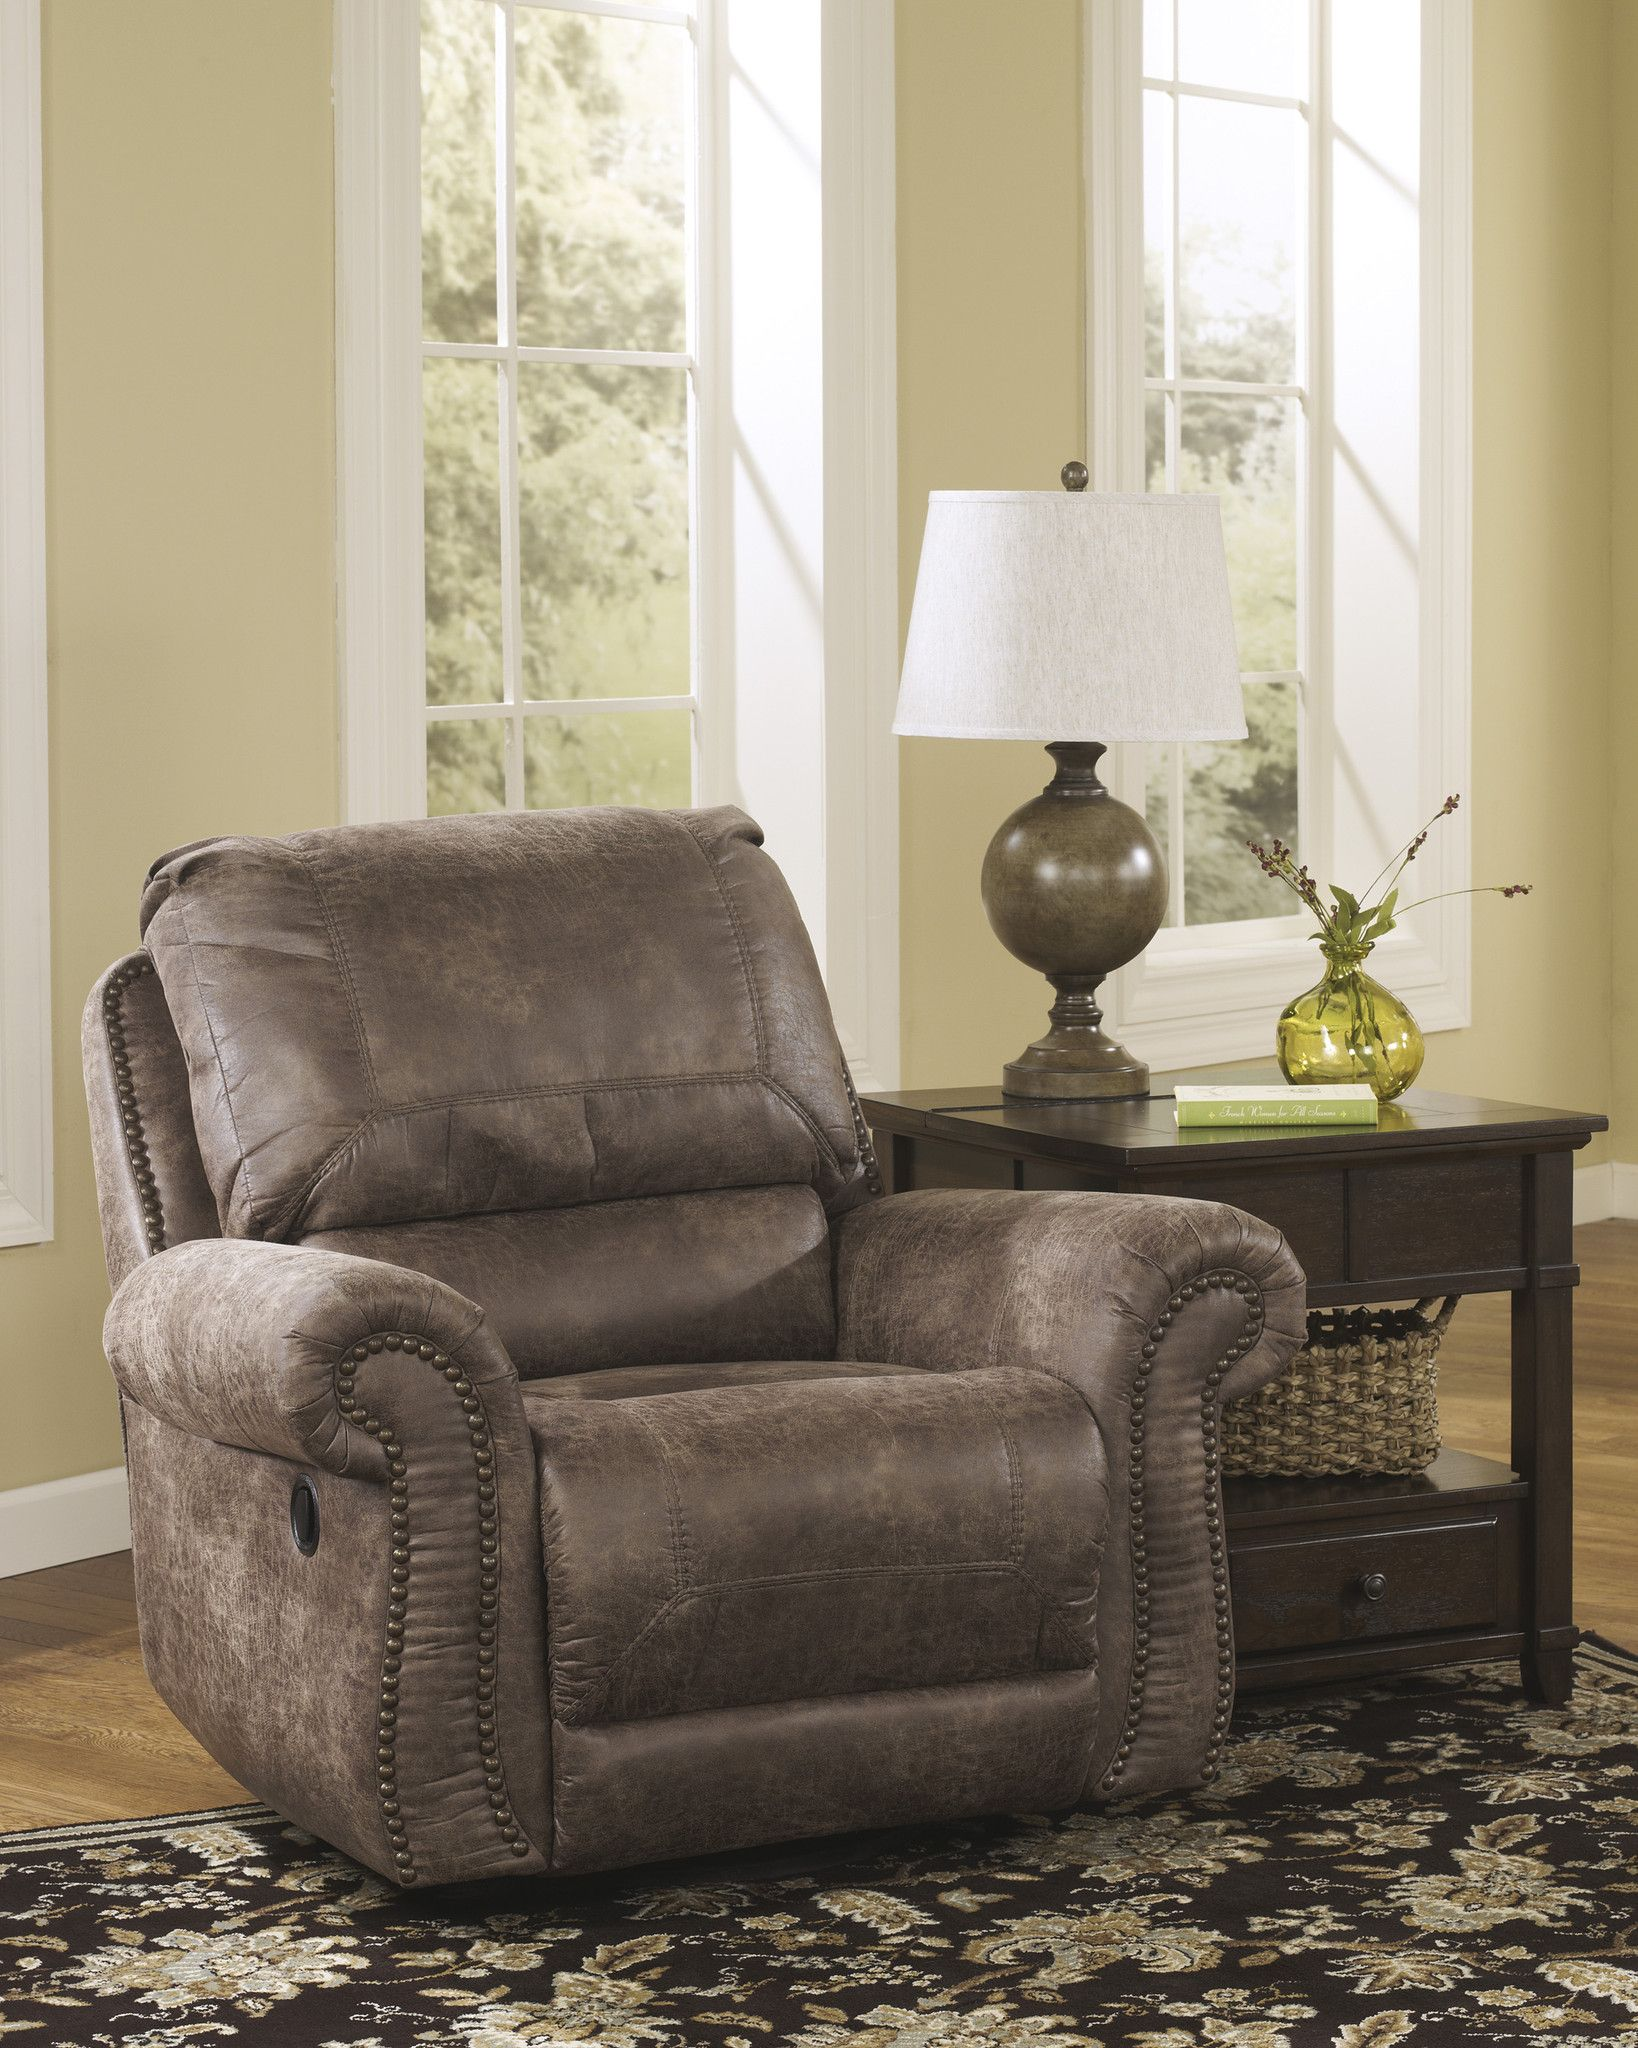 Oberson Swivel Glider Recliner  Outfit My Home  Recliners Alluring Living Room Recliners Decorating Inspiration